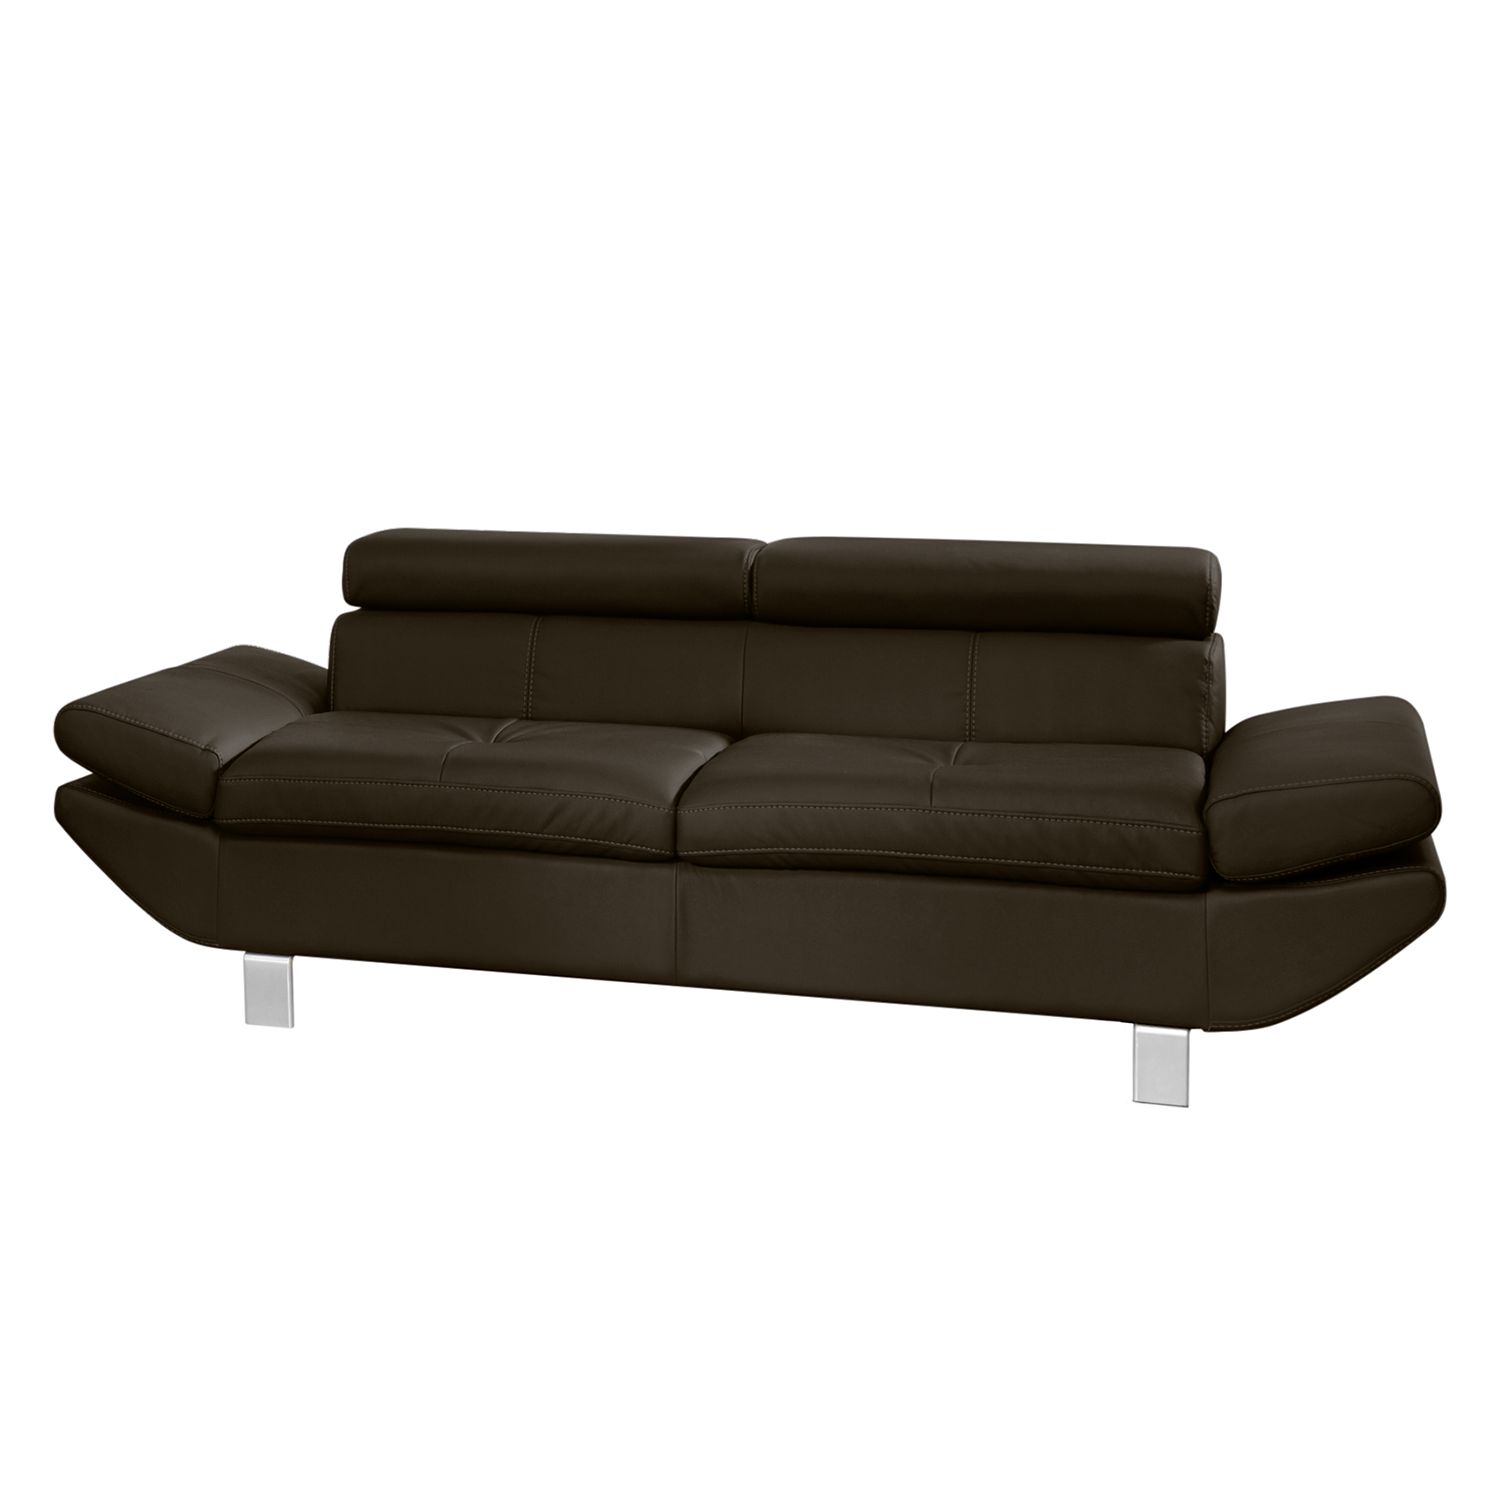 kunstleder sofa 2 sitzer preis vergleich 2016. Black Bedroom Furniture Sets. Home Design Ideas